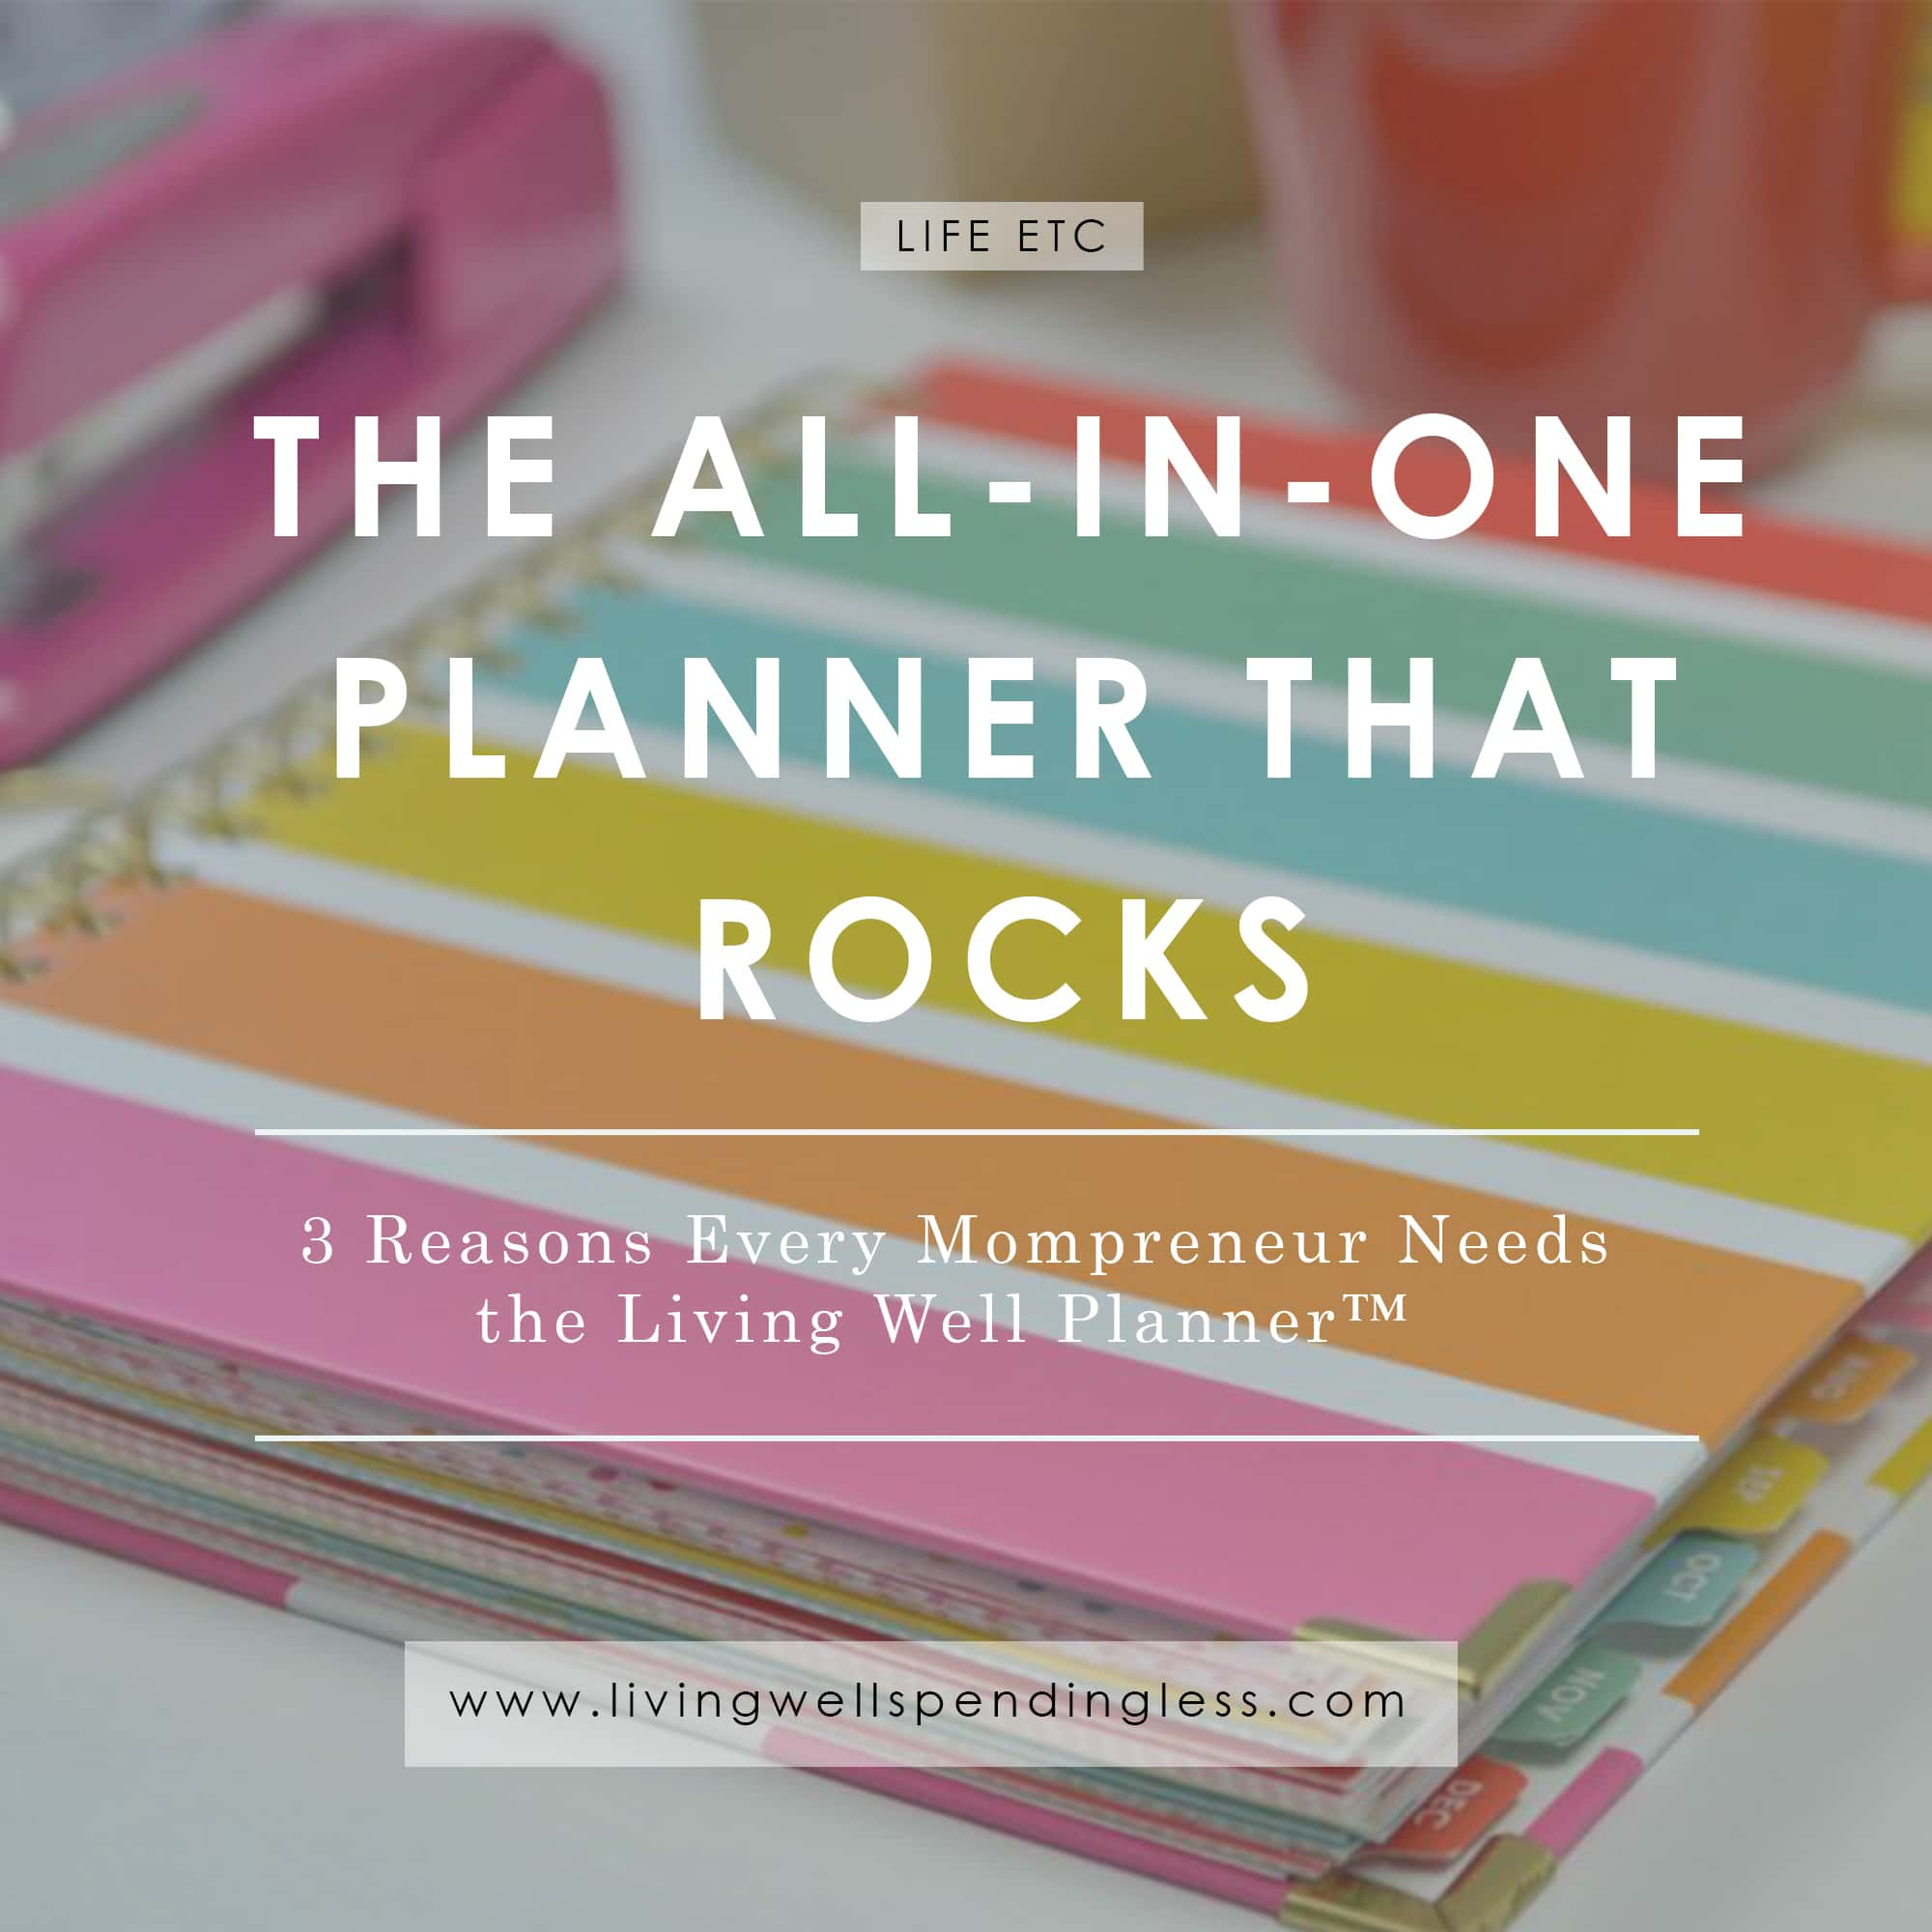 3rlpr_ig3 Reasons Every Mompreneur Needs the Living Well Planner | Time Management | Family Life | Managing Priorities